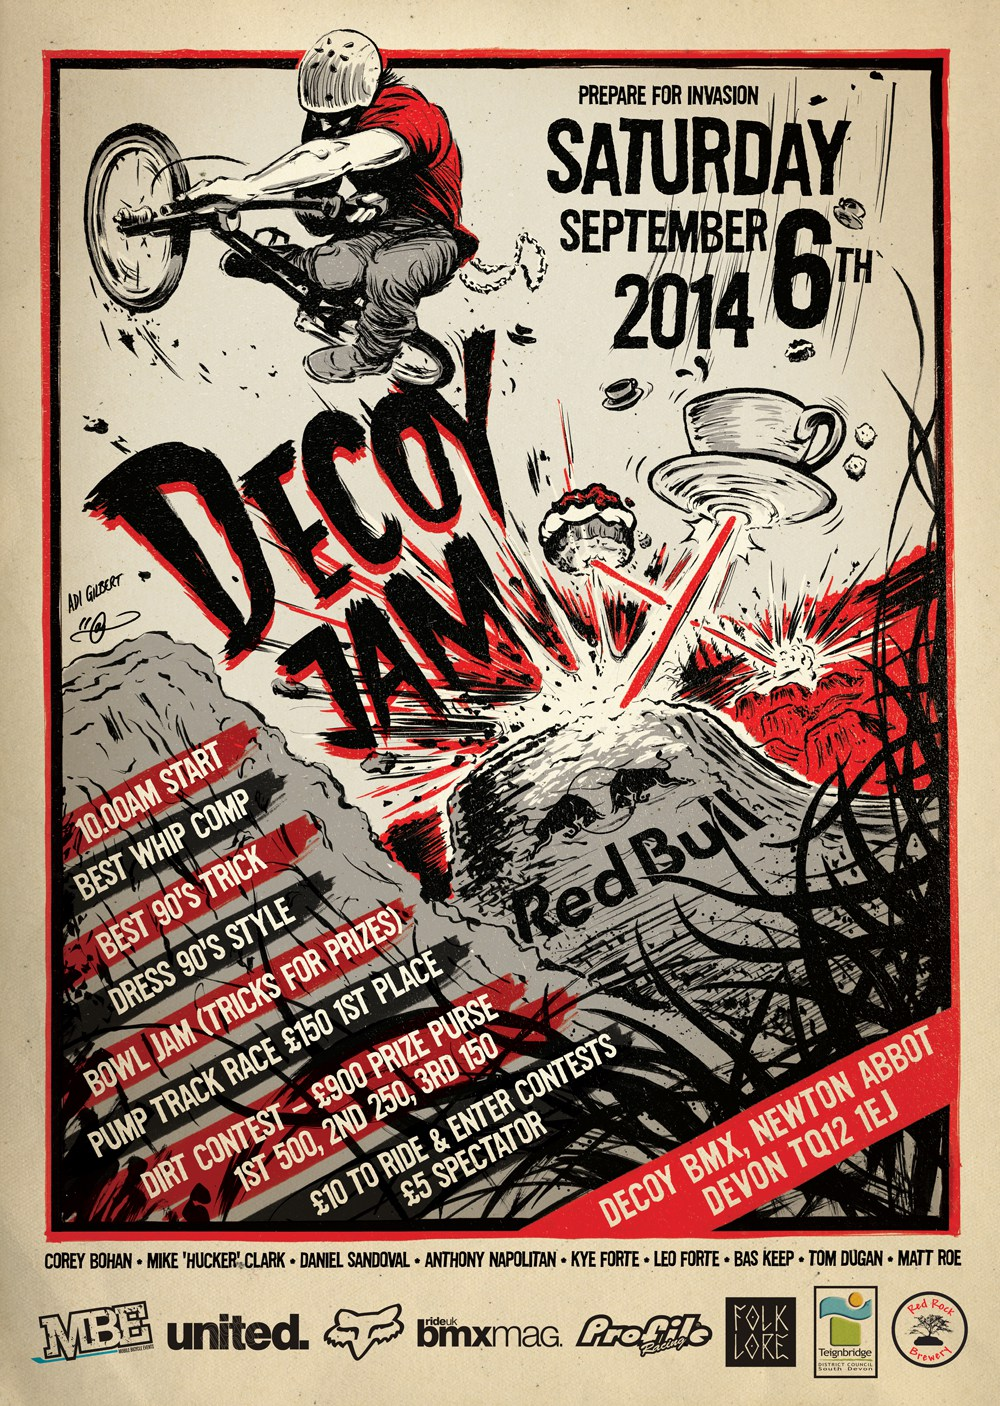 Decoy Trails Jam 2014